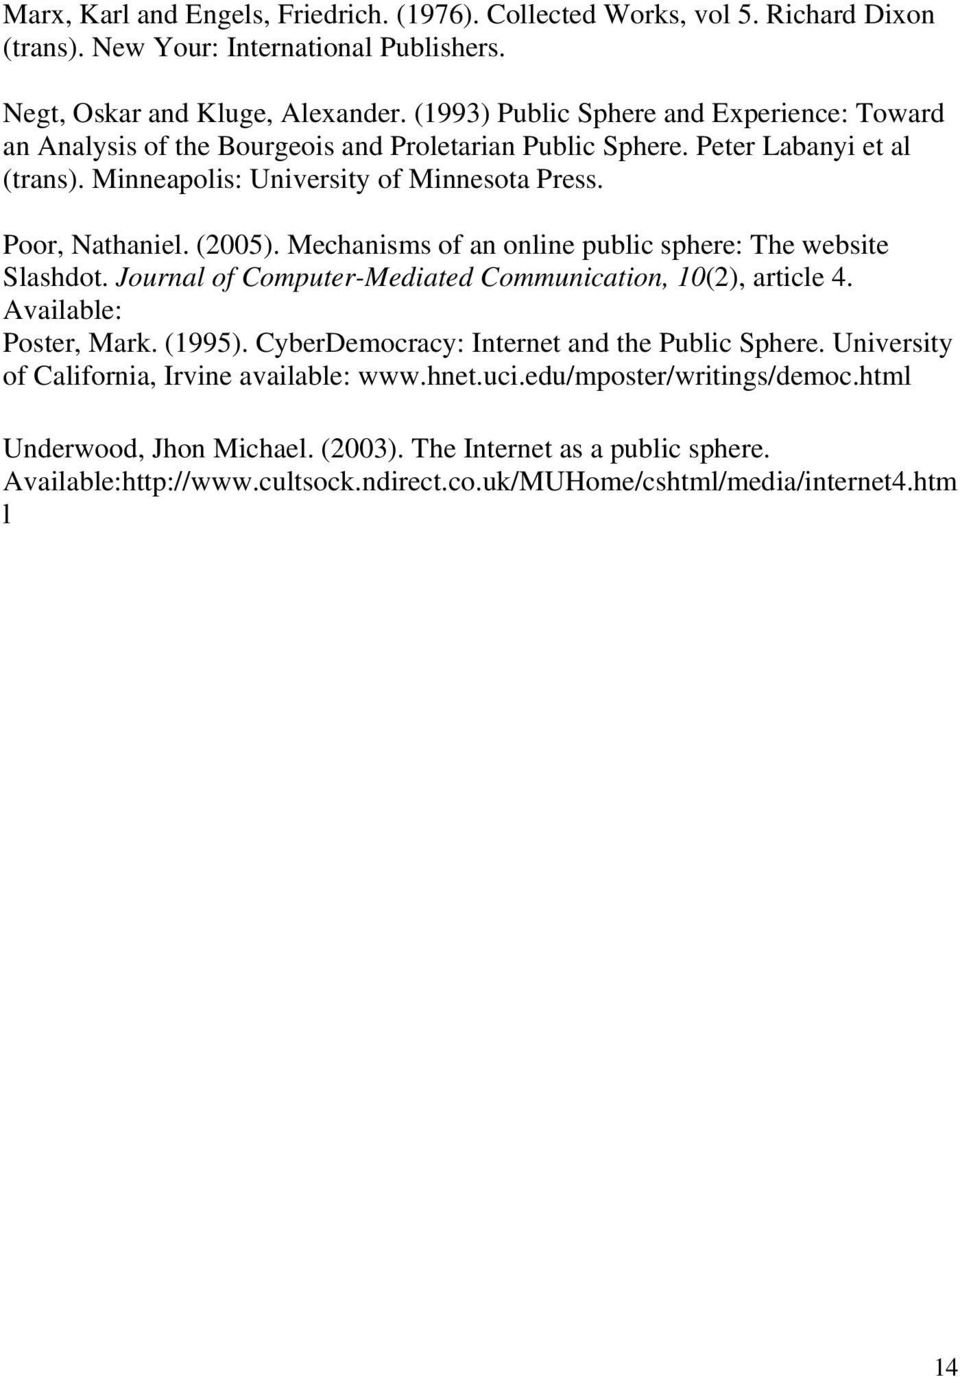 (2005). Mechanisms of an online public sphere: The website Slashdot. Journal of Computer-Mediated Communication, 10(2), article 4. Available: Poster, Mark. (1995).